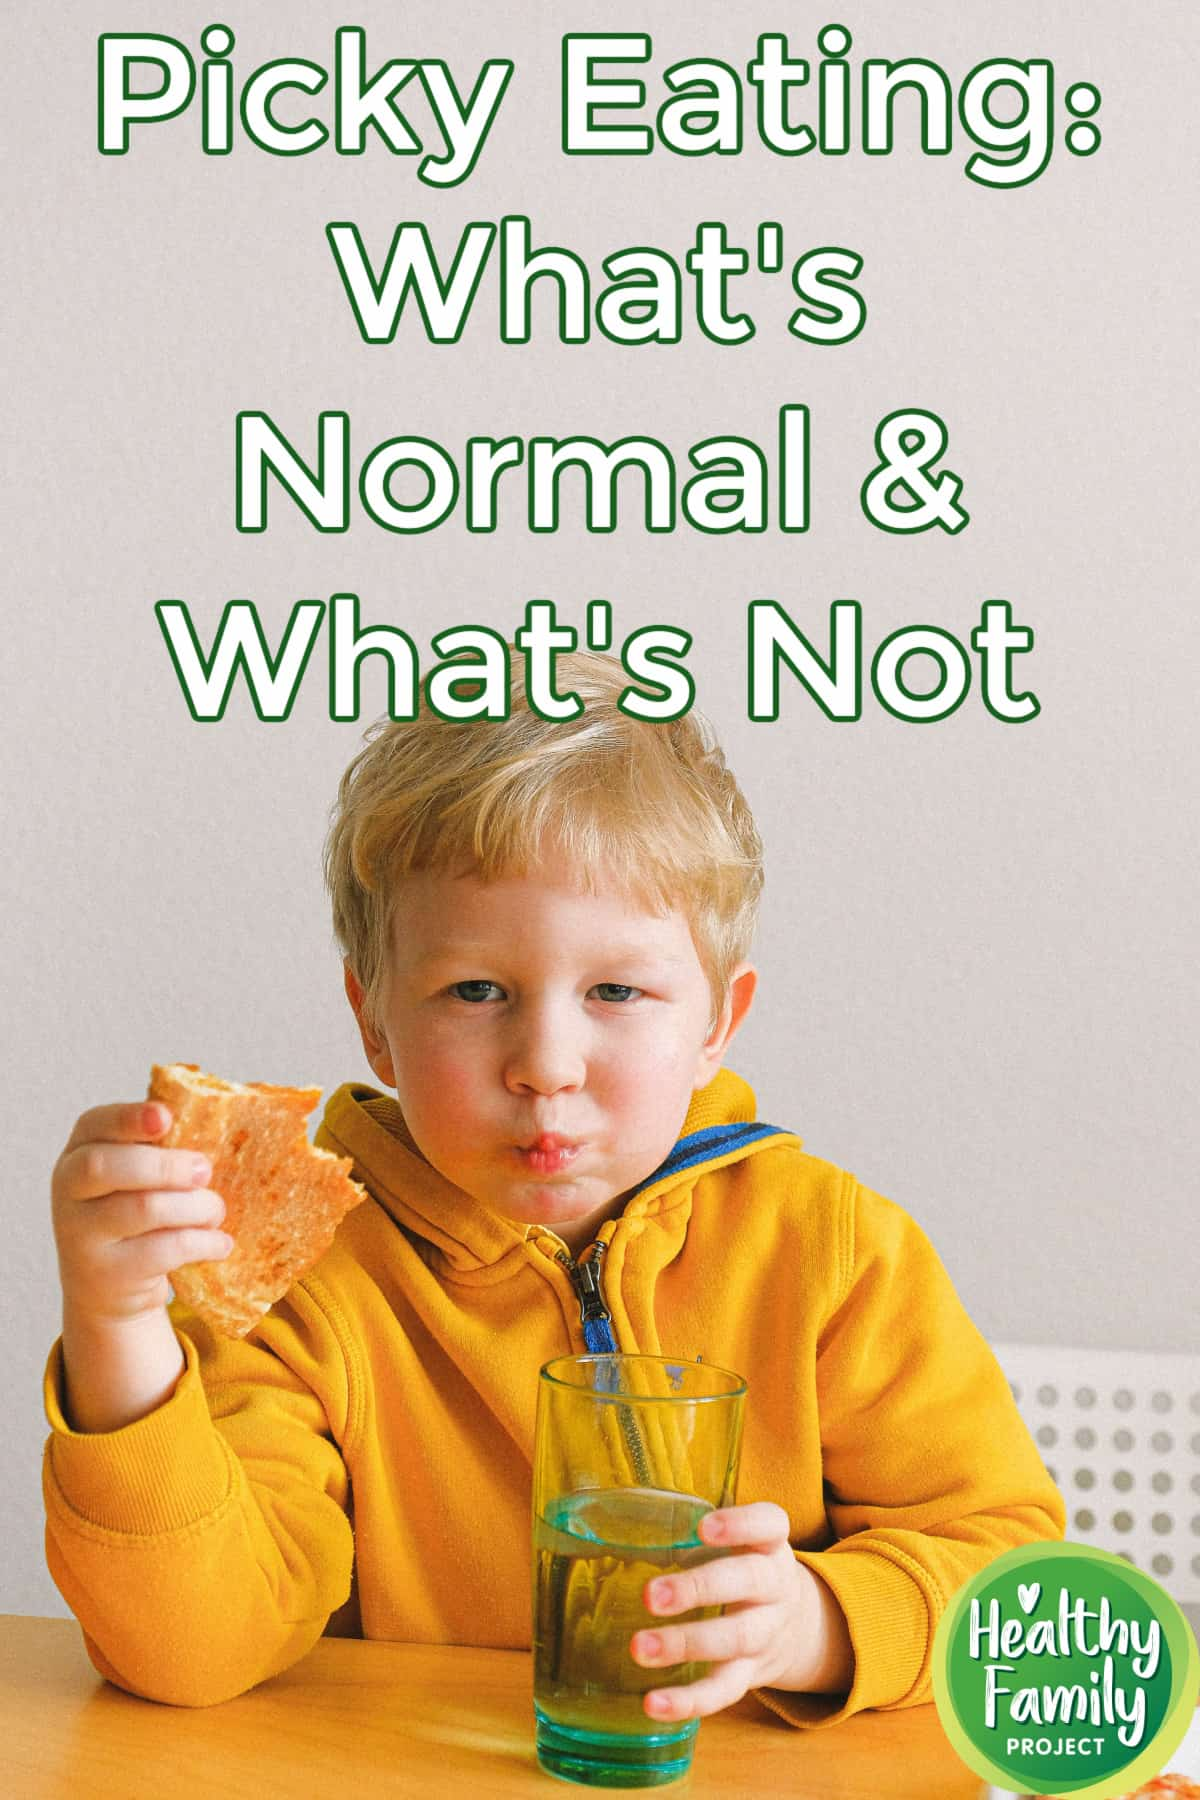 Picky Eating: What's Normal & What's Not